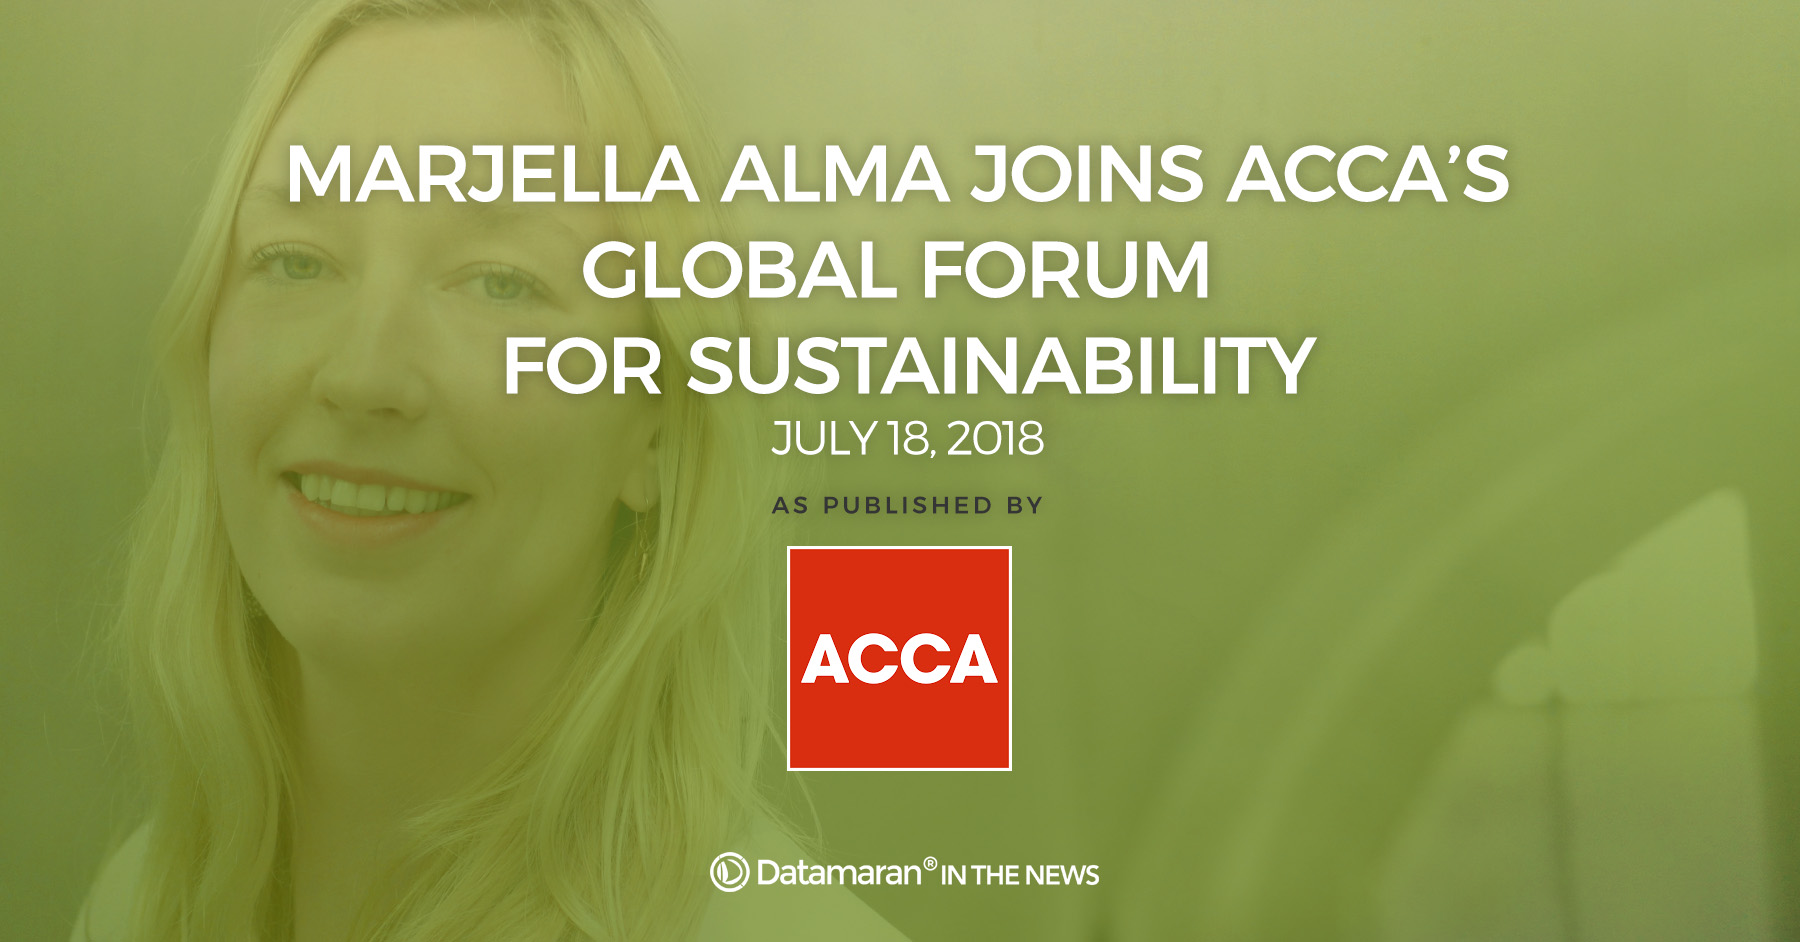 Marjella Alma joined ACCA's Global Forum for Sustainability